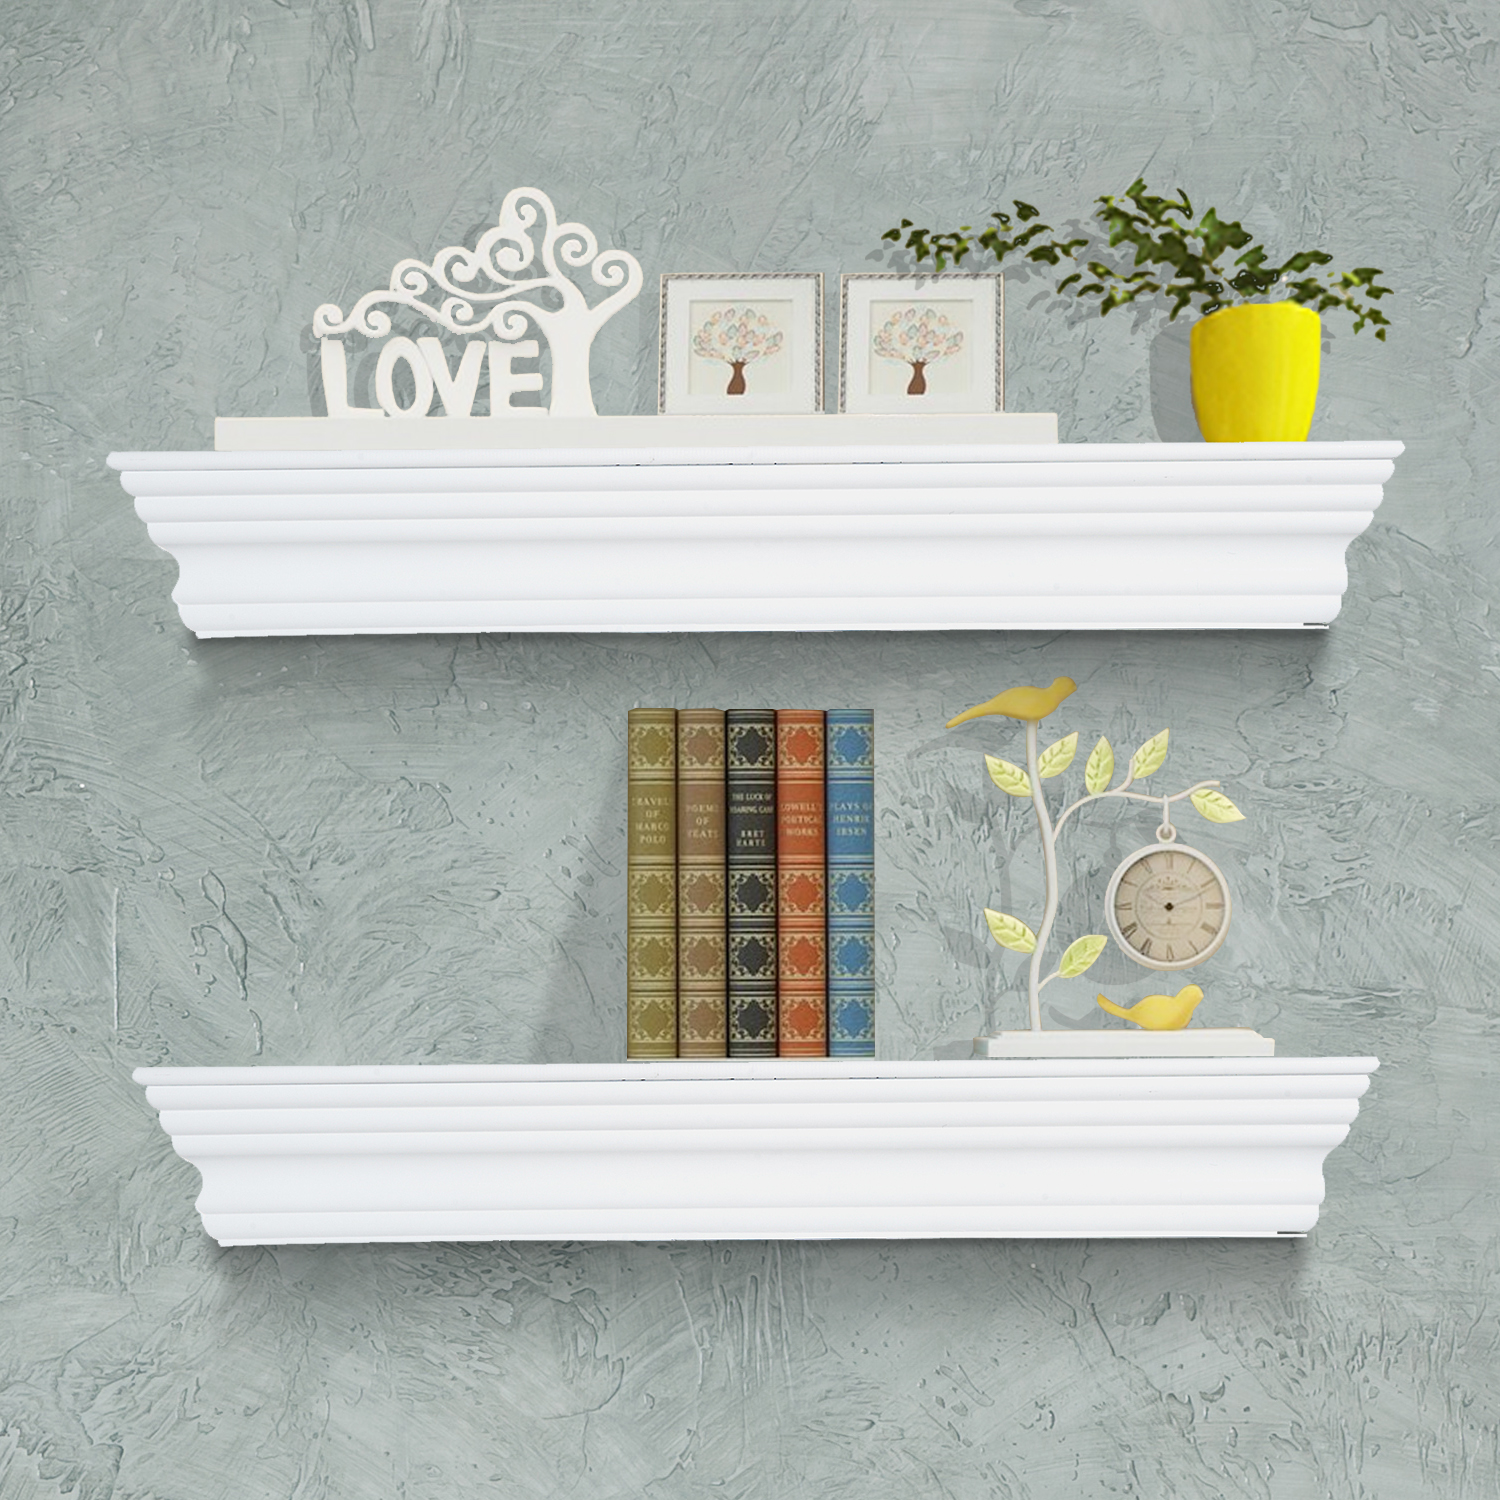 Wall Mounted Shelves Canada Cad 39 99 Homcom Floating Wall Shelf Ledge Mounted Display